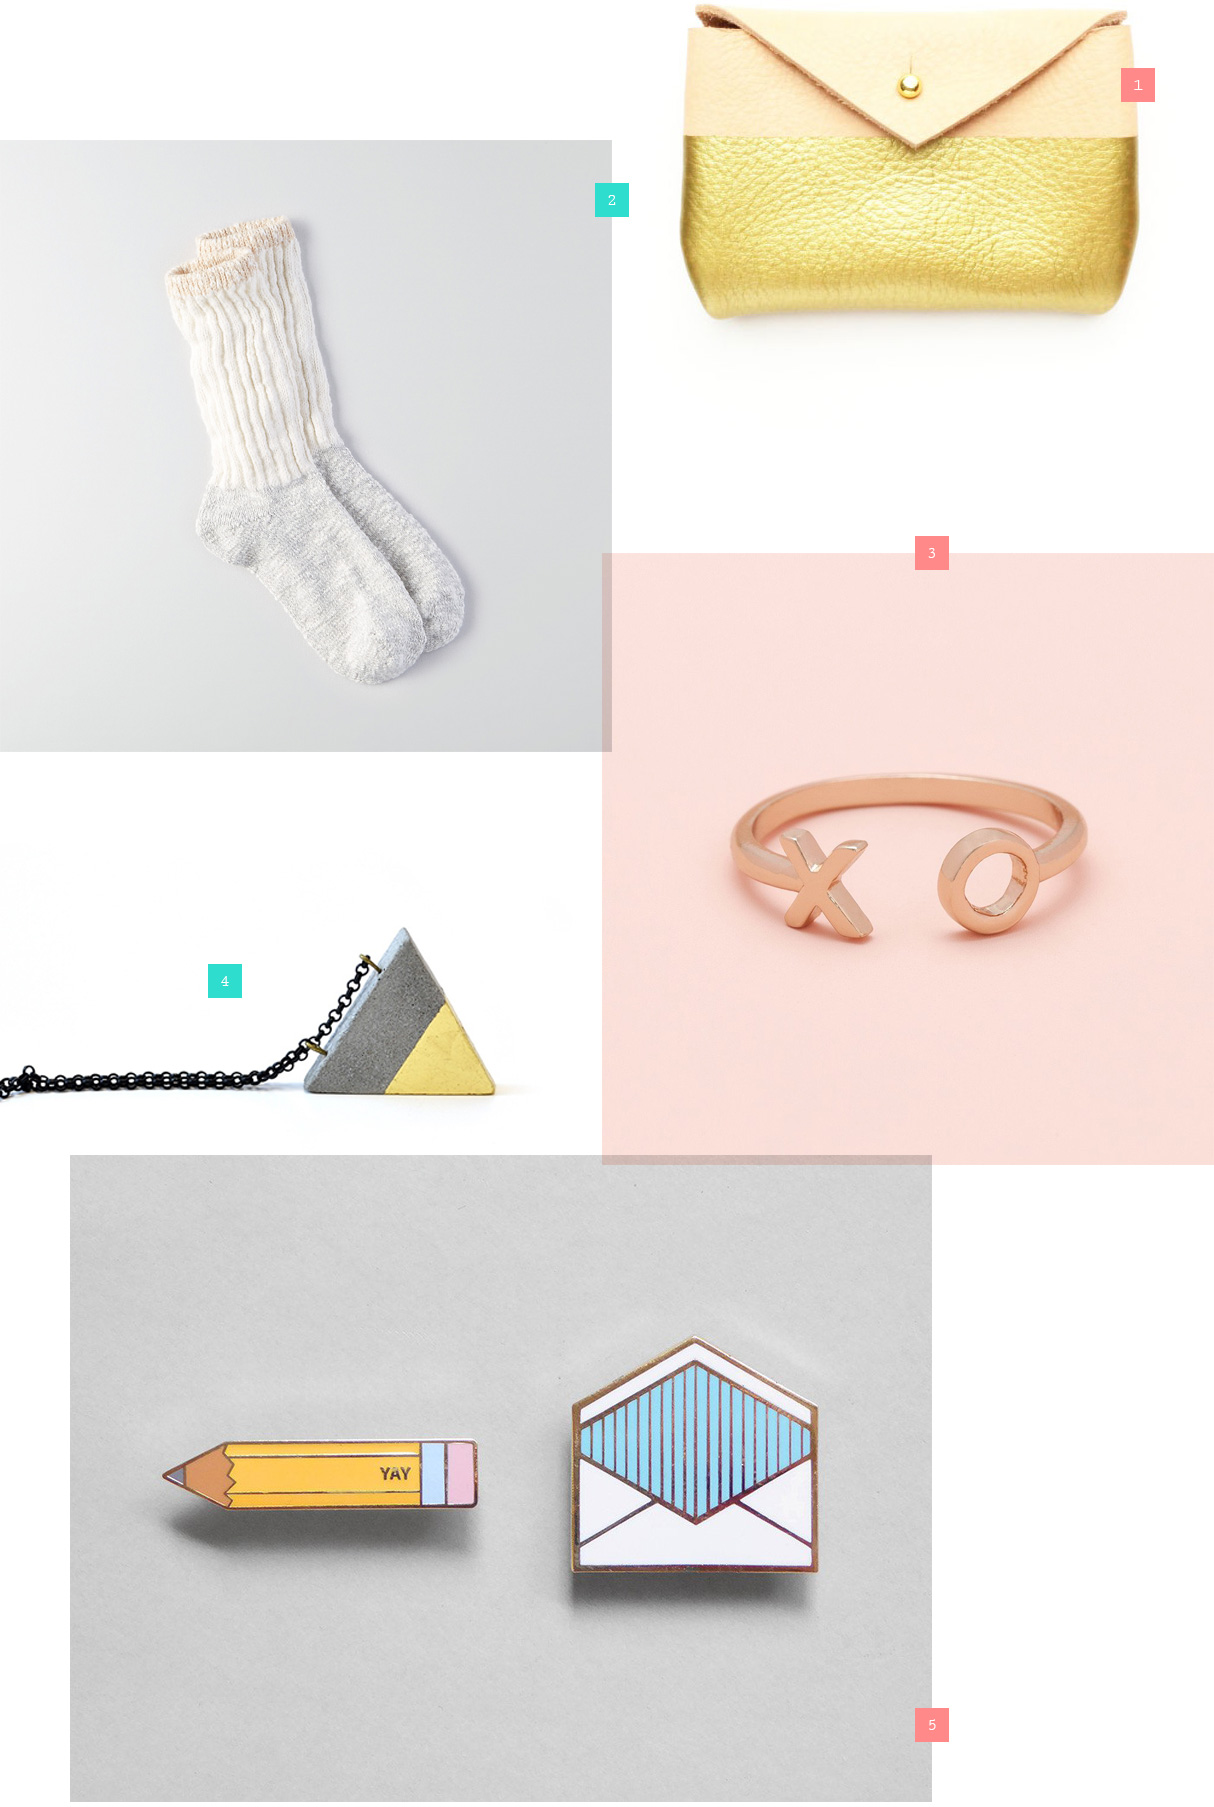 Sickly Sweet Stocking Fillers for Awesome Momma's - Small gifts for Mums from ban.do, Brika, Present & Correct, American Eagle Outfitters, Sugarfina, Happy Mail; Chocolate, stationery, cosy lounge socks, sweets, candy, enamel pins etc.